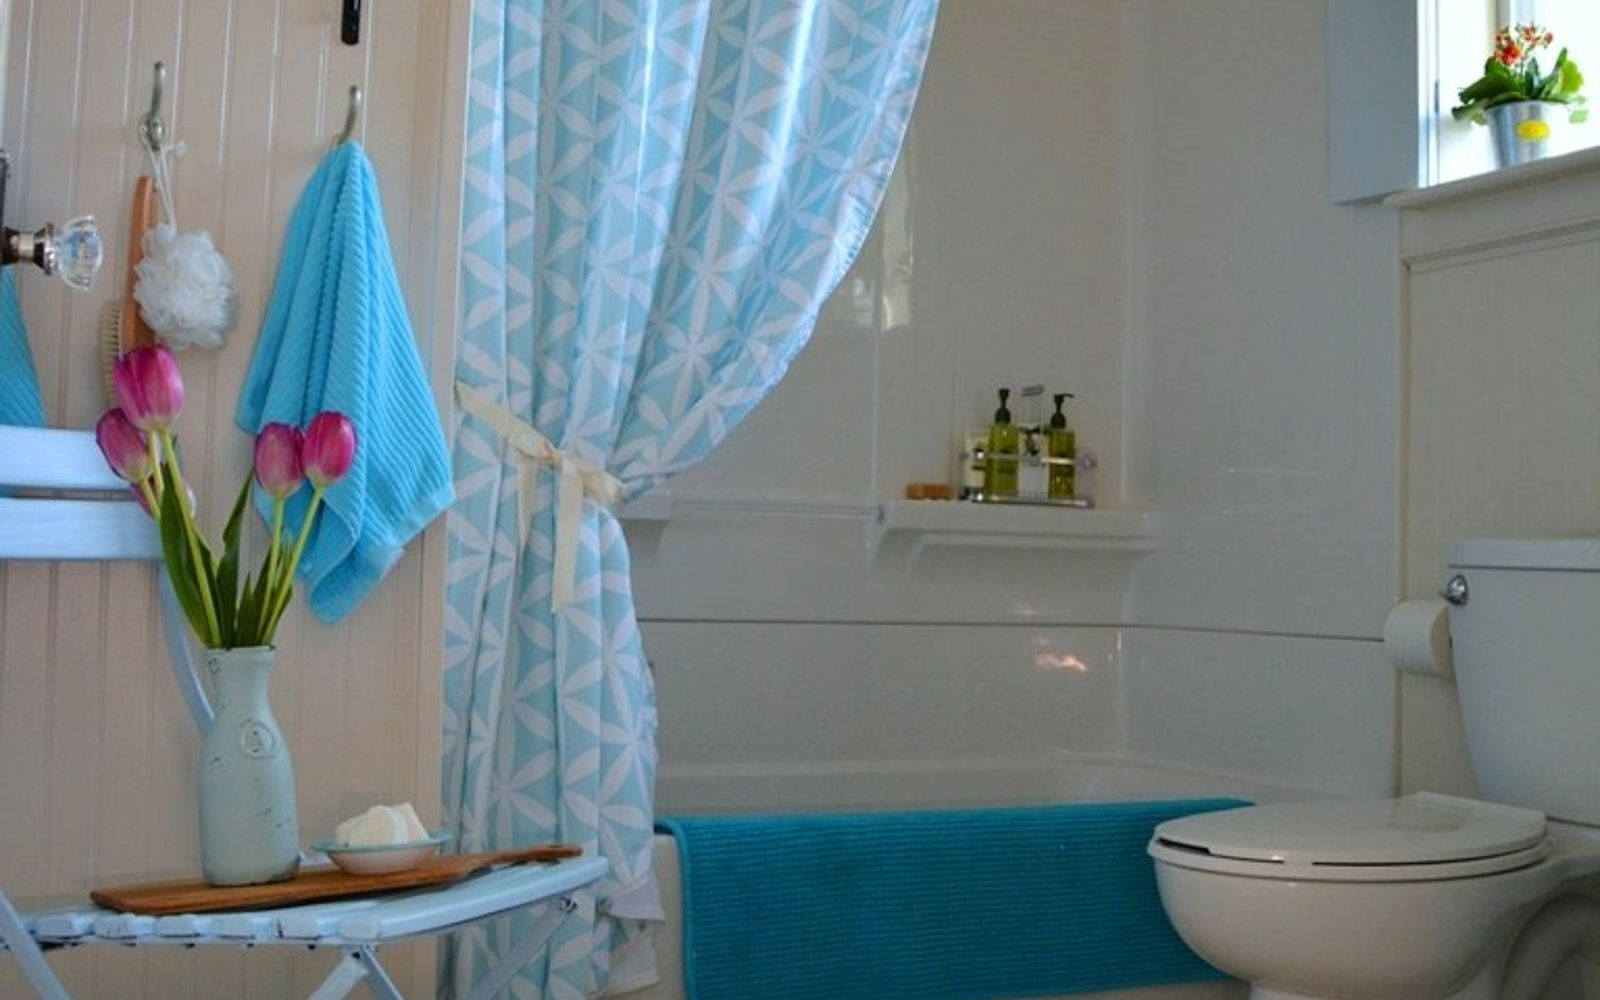 s 11 actually helpful tricks for decorating a small bathroom, bathroom ideas, Stick to bright vibrant colors for textiles